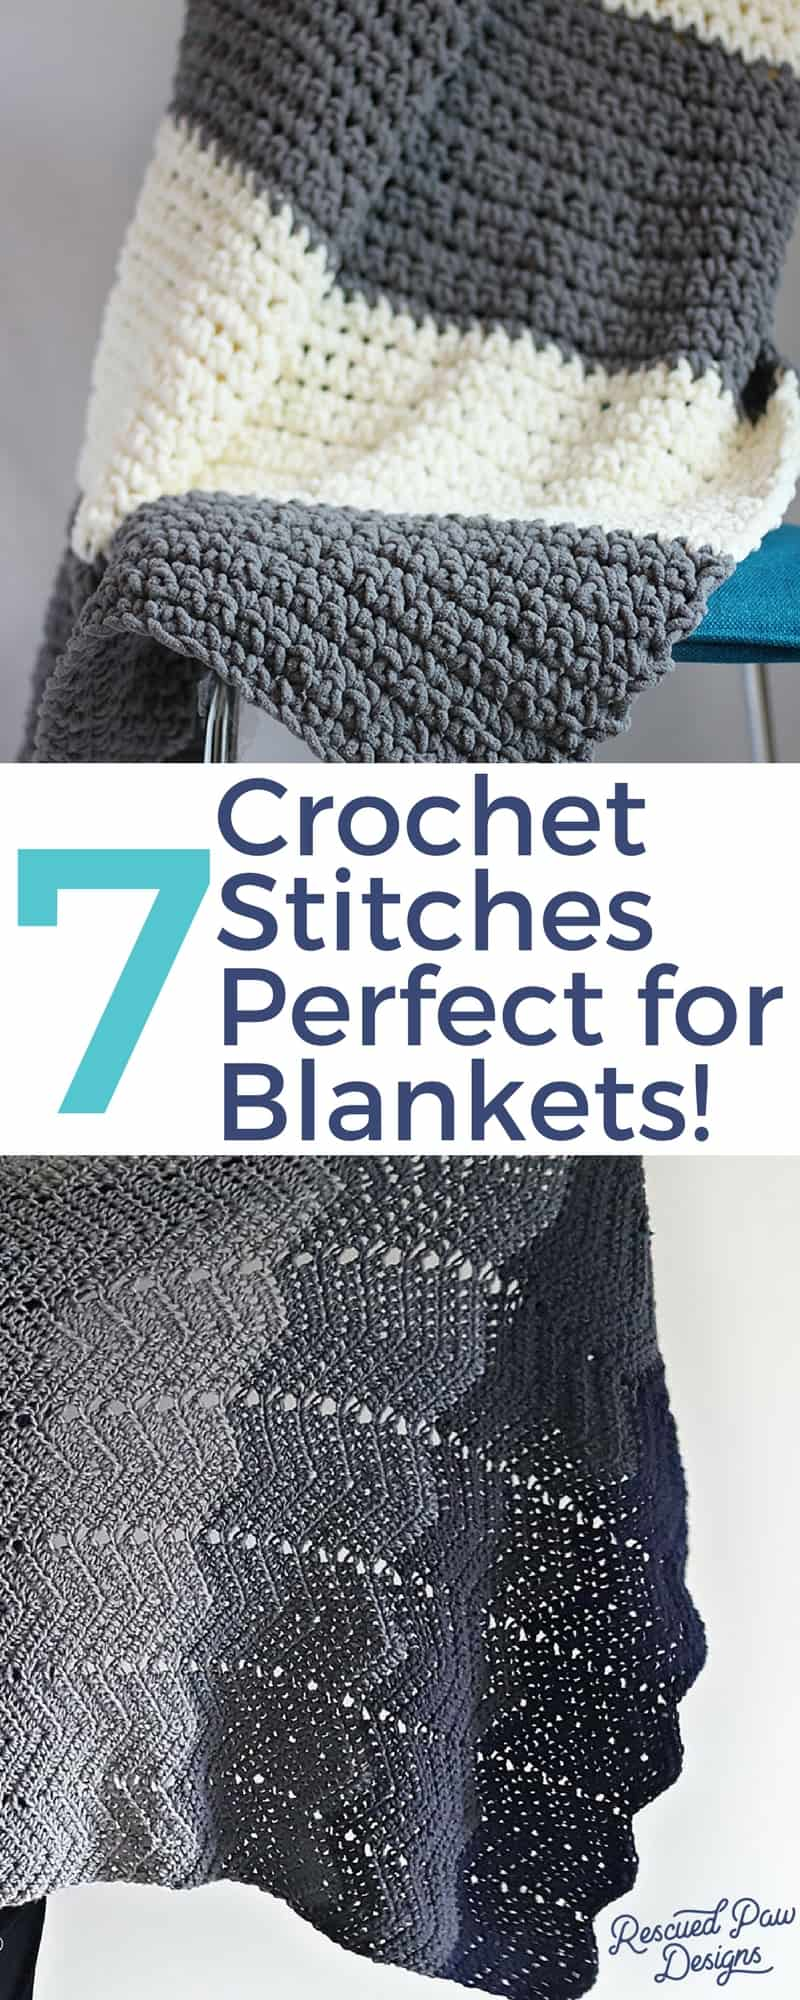 Crochet Stitches for Blankets - Use of these 7 stitches today to create the perfect crochet baby blanket!